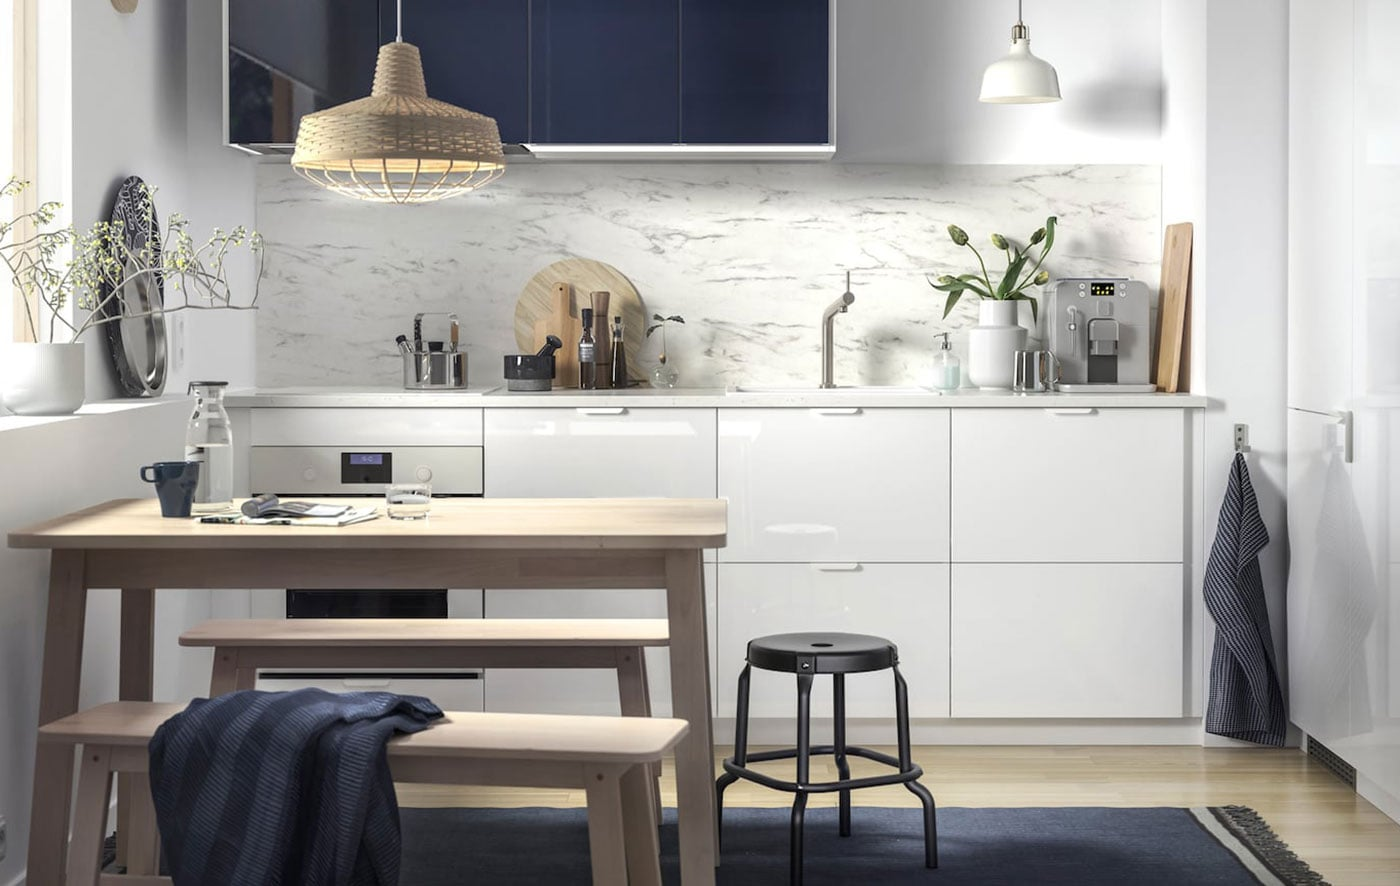 Merveilleux A Small, White Kitchen With Marble Effect Splashback And Dark Blue Wall  Cabinets.